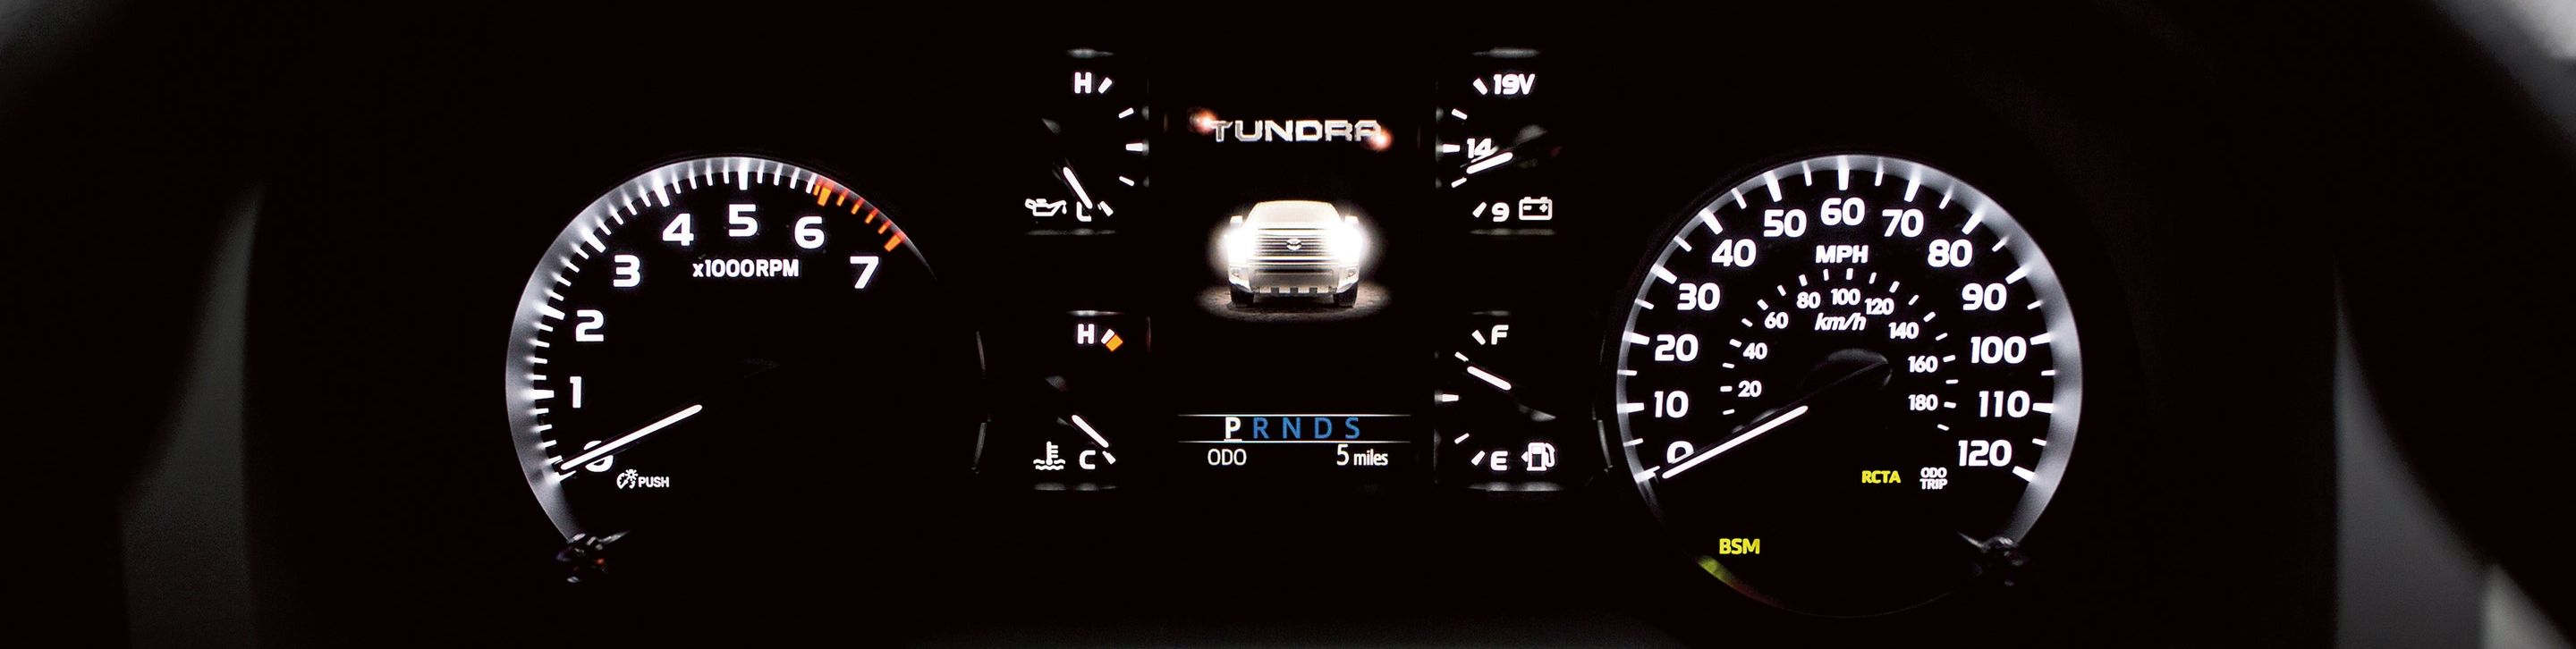 Dashboard of the 2020 Tundra